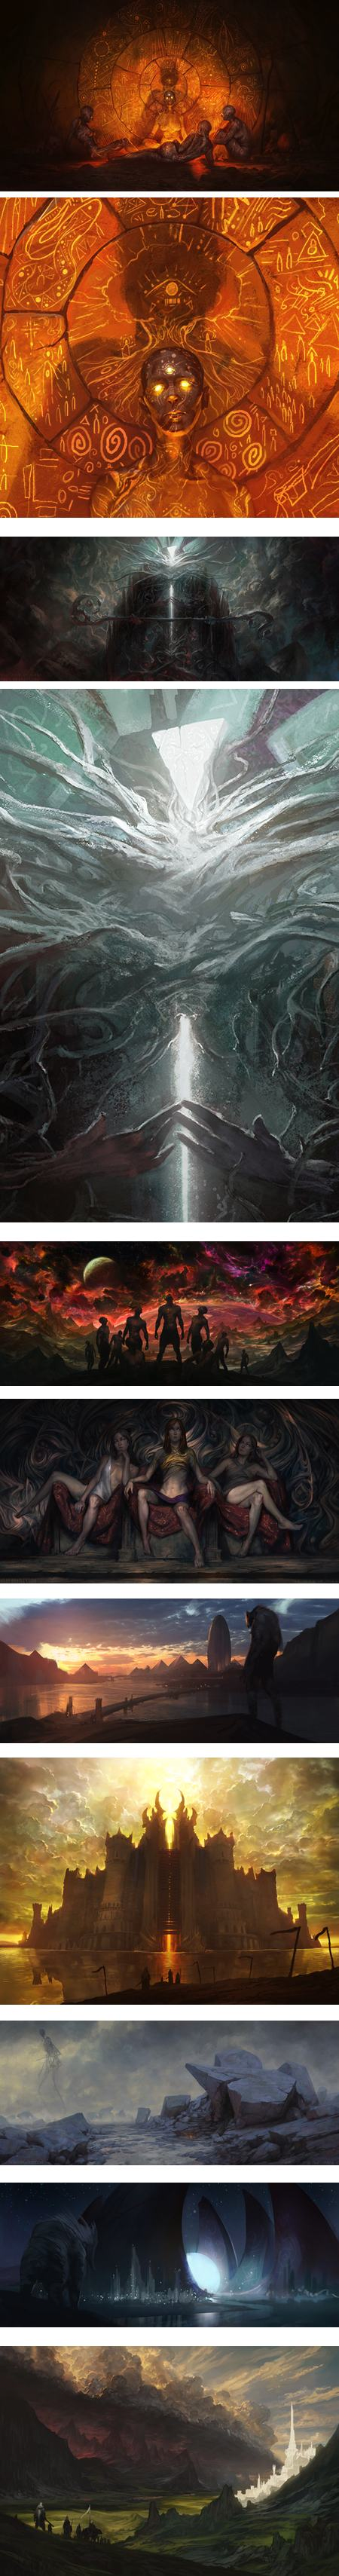 Noah Bradley, concept art and illustration